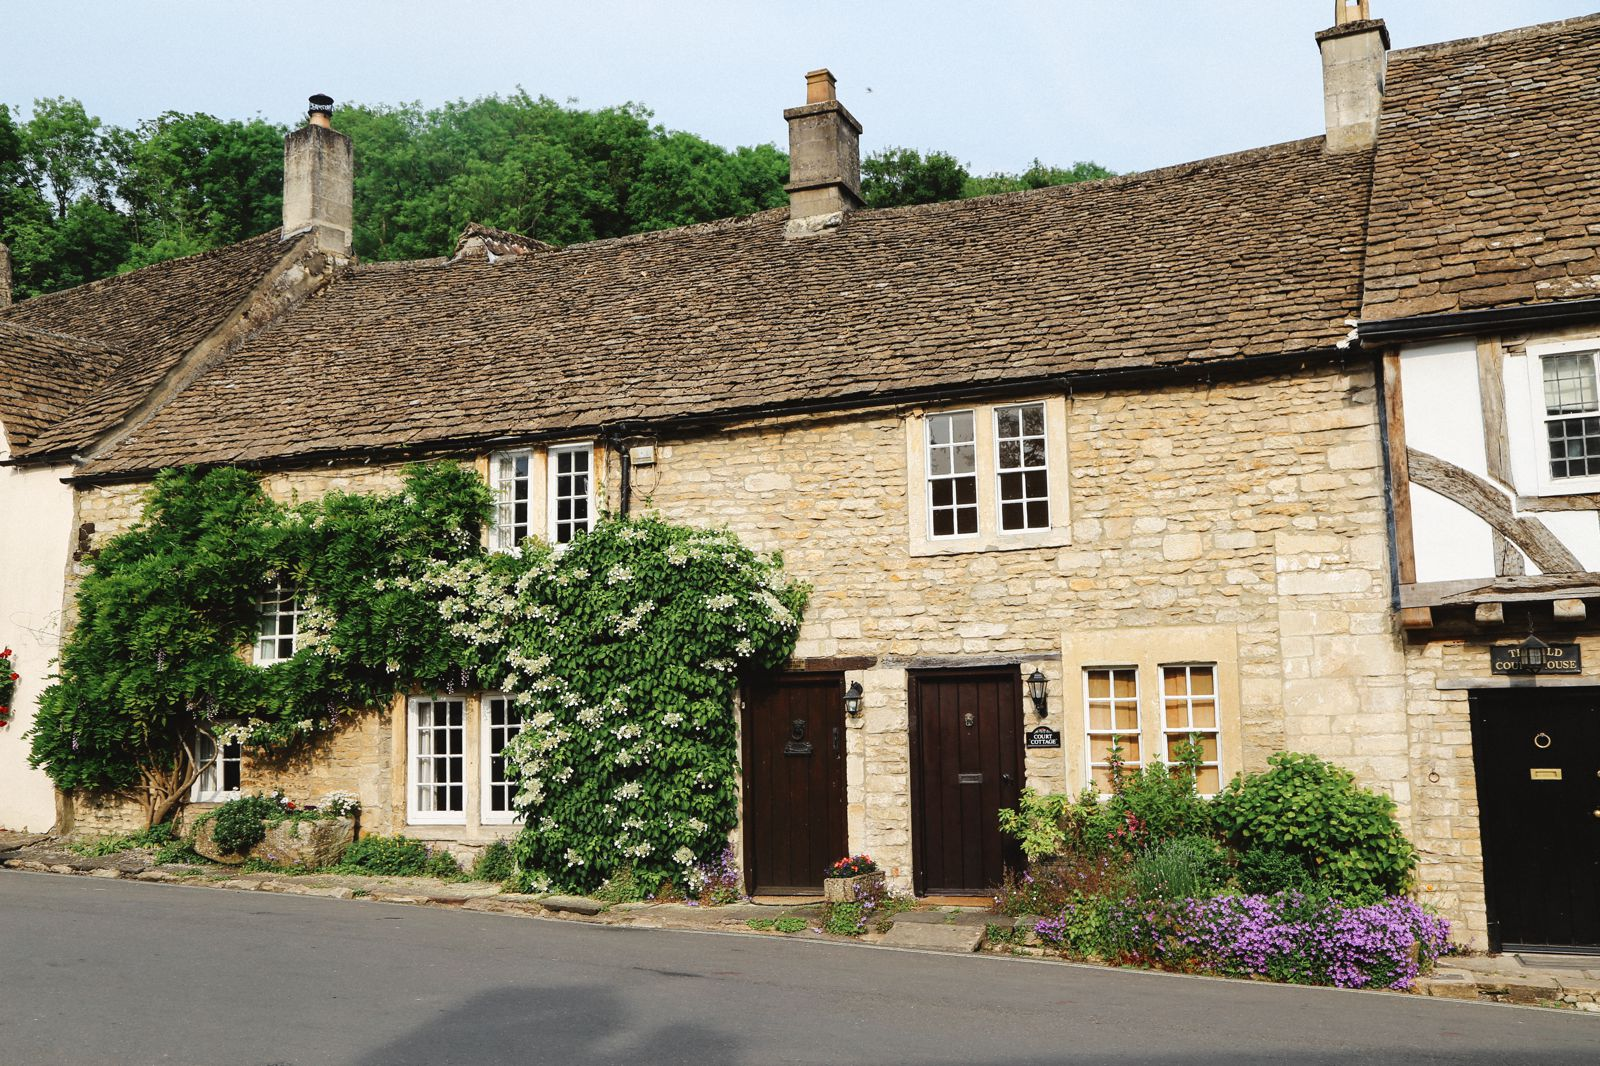 Exploring One Of England's Most Beautiful Villages - Castle Combe (29)